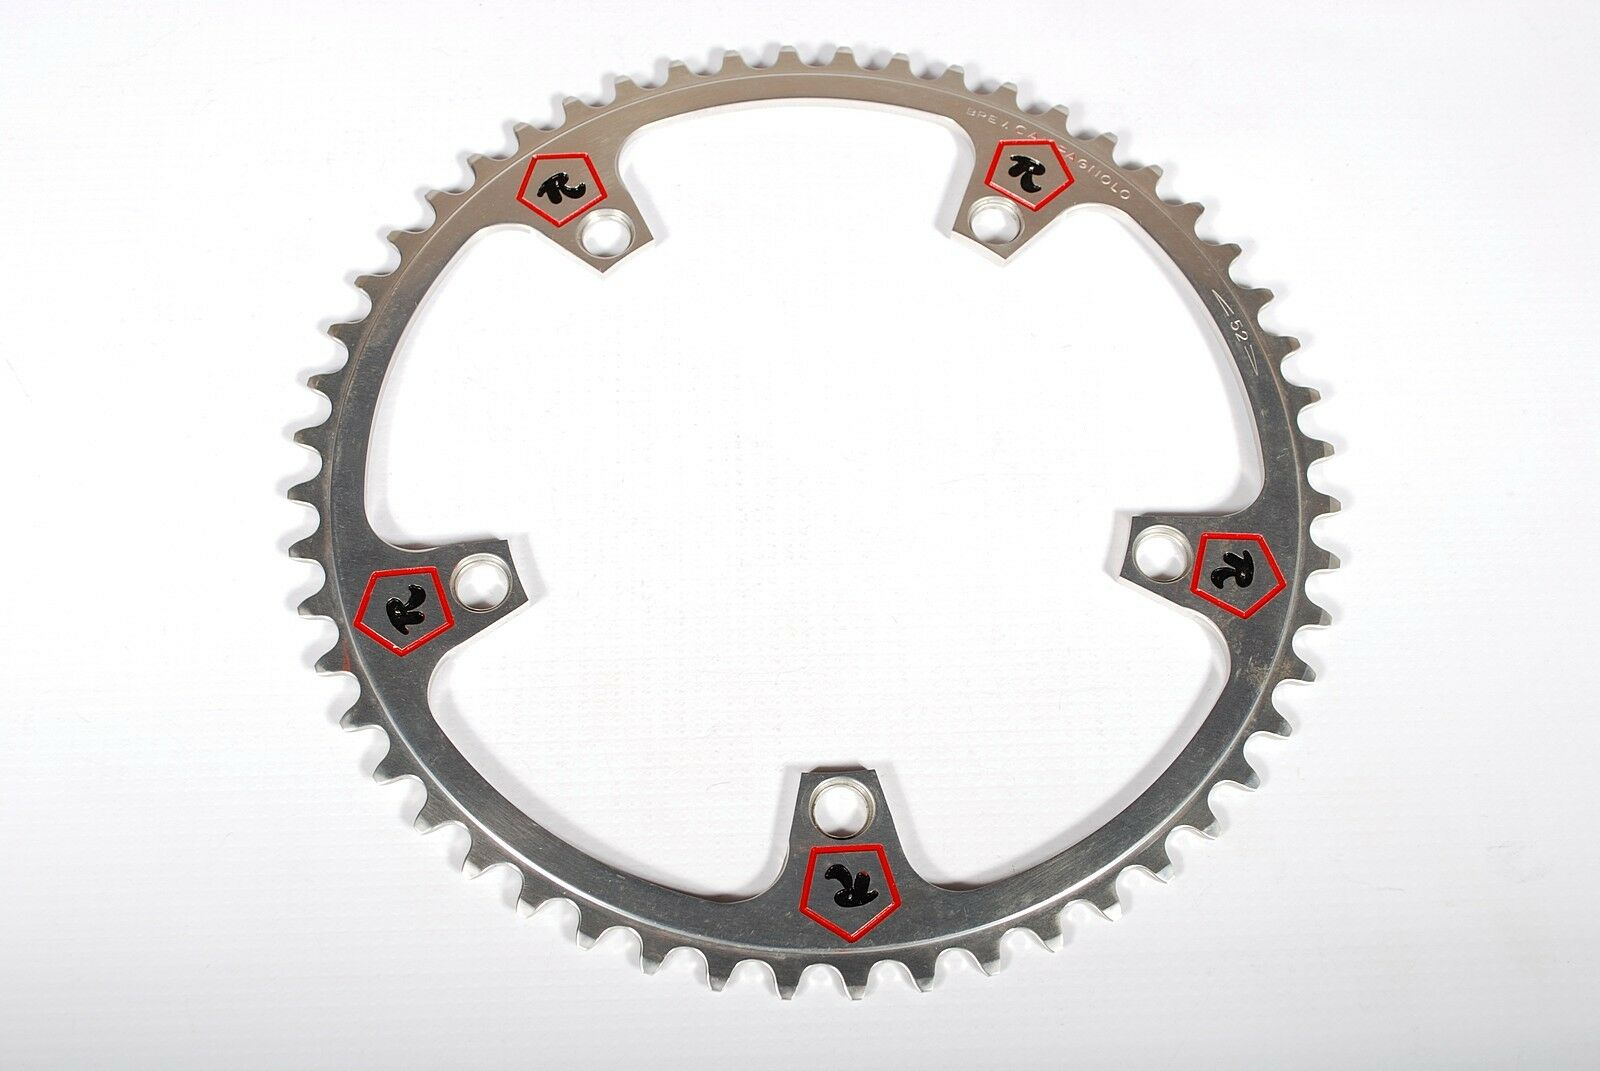 Vintage Campagnolo Super Record  Bicycle Chainring Rossin Pantographed 144BCD 52T  wholesale cheap and high quality